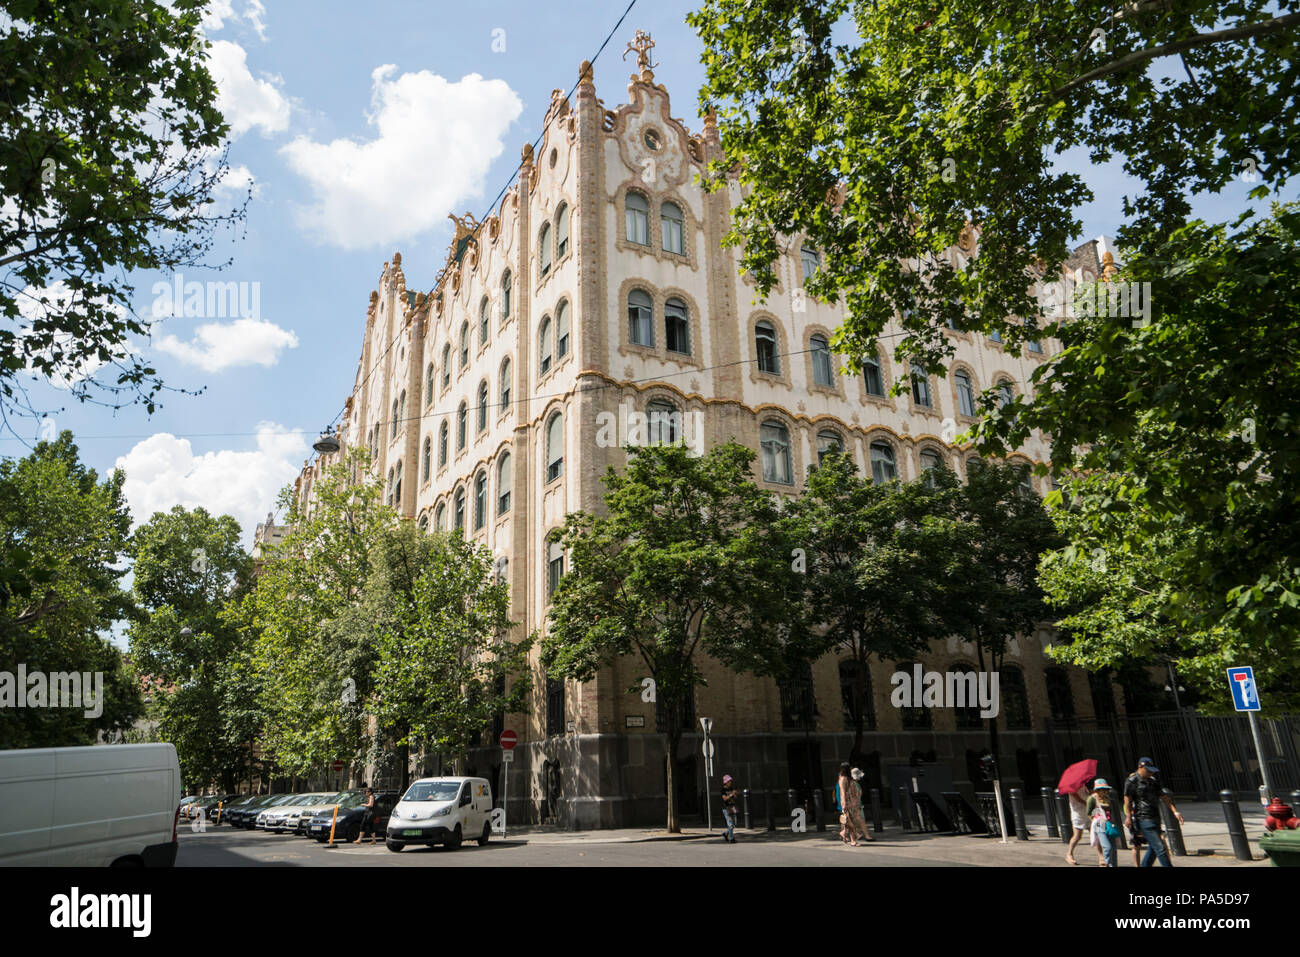 View of the Palace of the postal savings bank in Budapest, Hungary - Stock Image